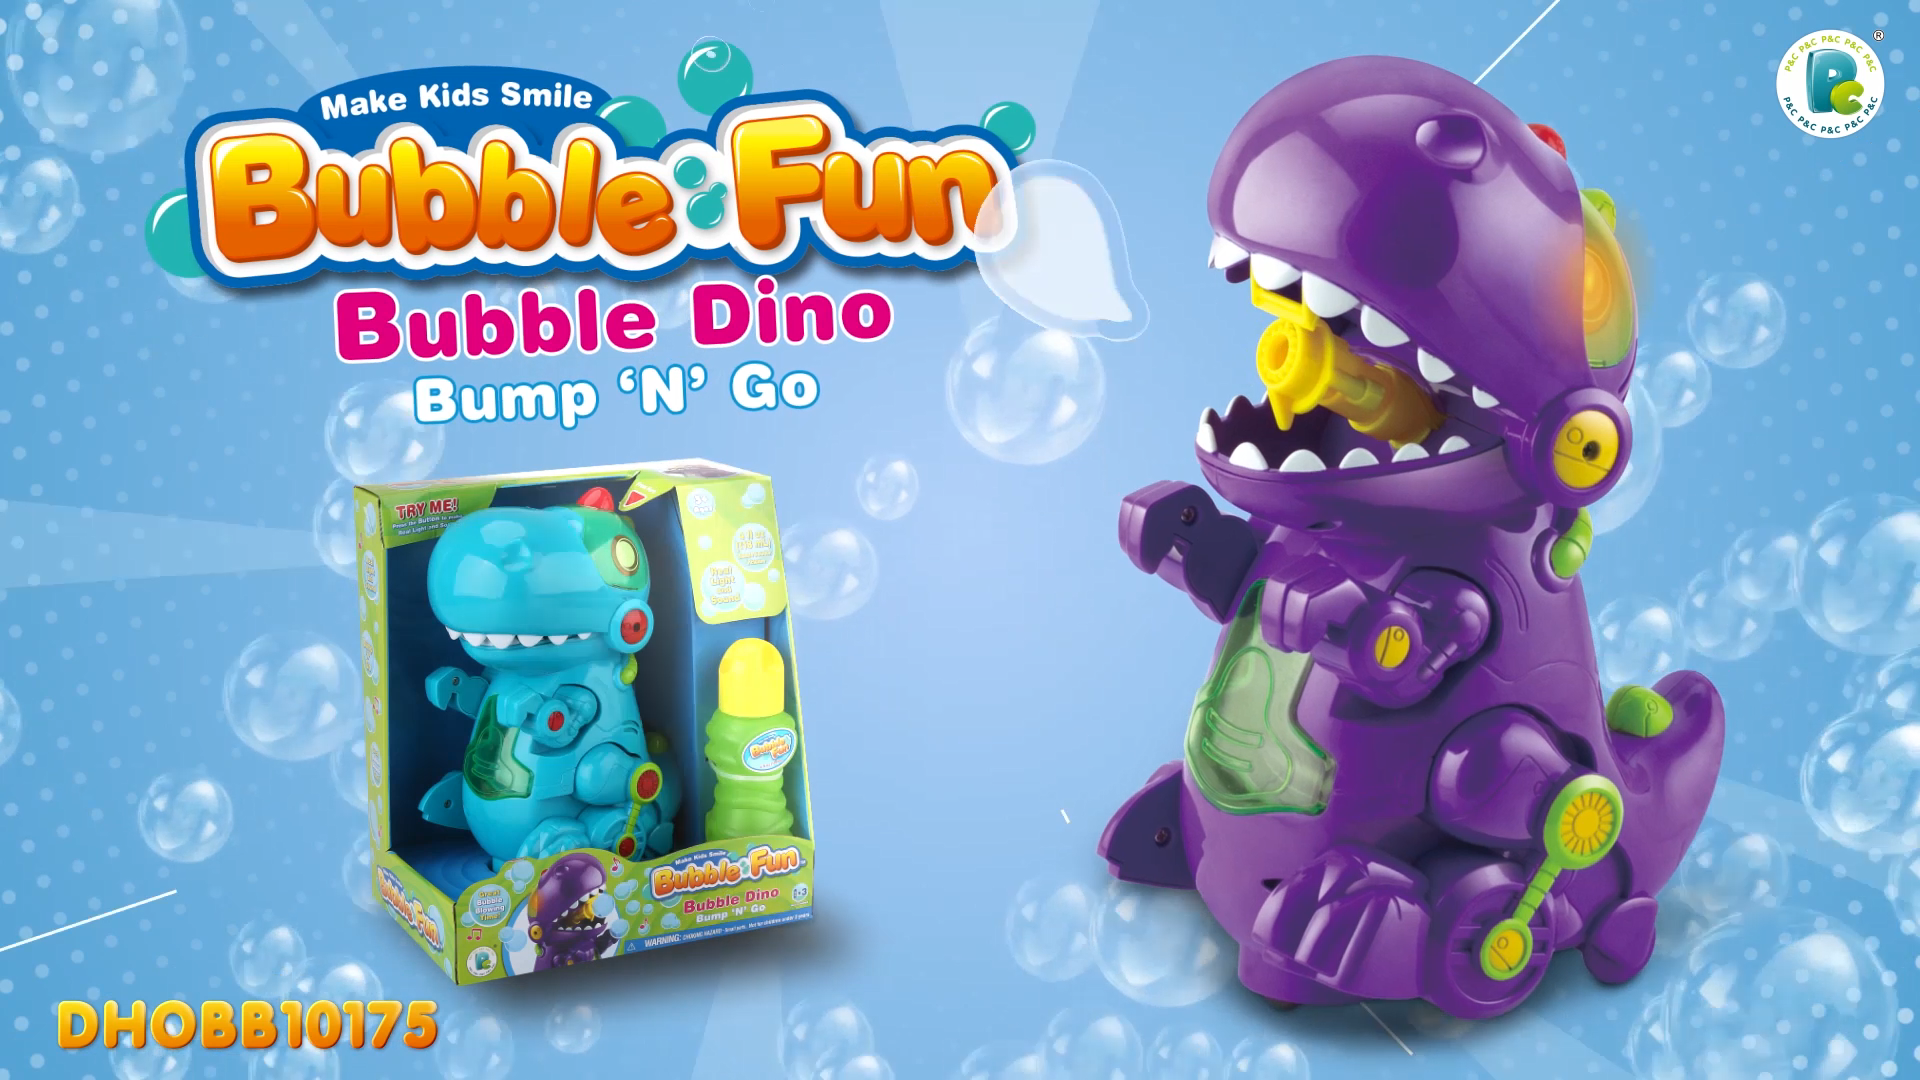 Bubble Fun Bump & Go Bubble Dinosaur Bubble Machine with Action and Light & Sound for Kids,Birthday Family Party